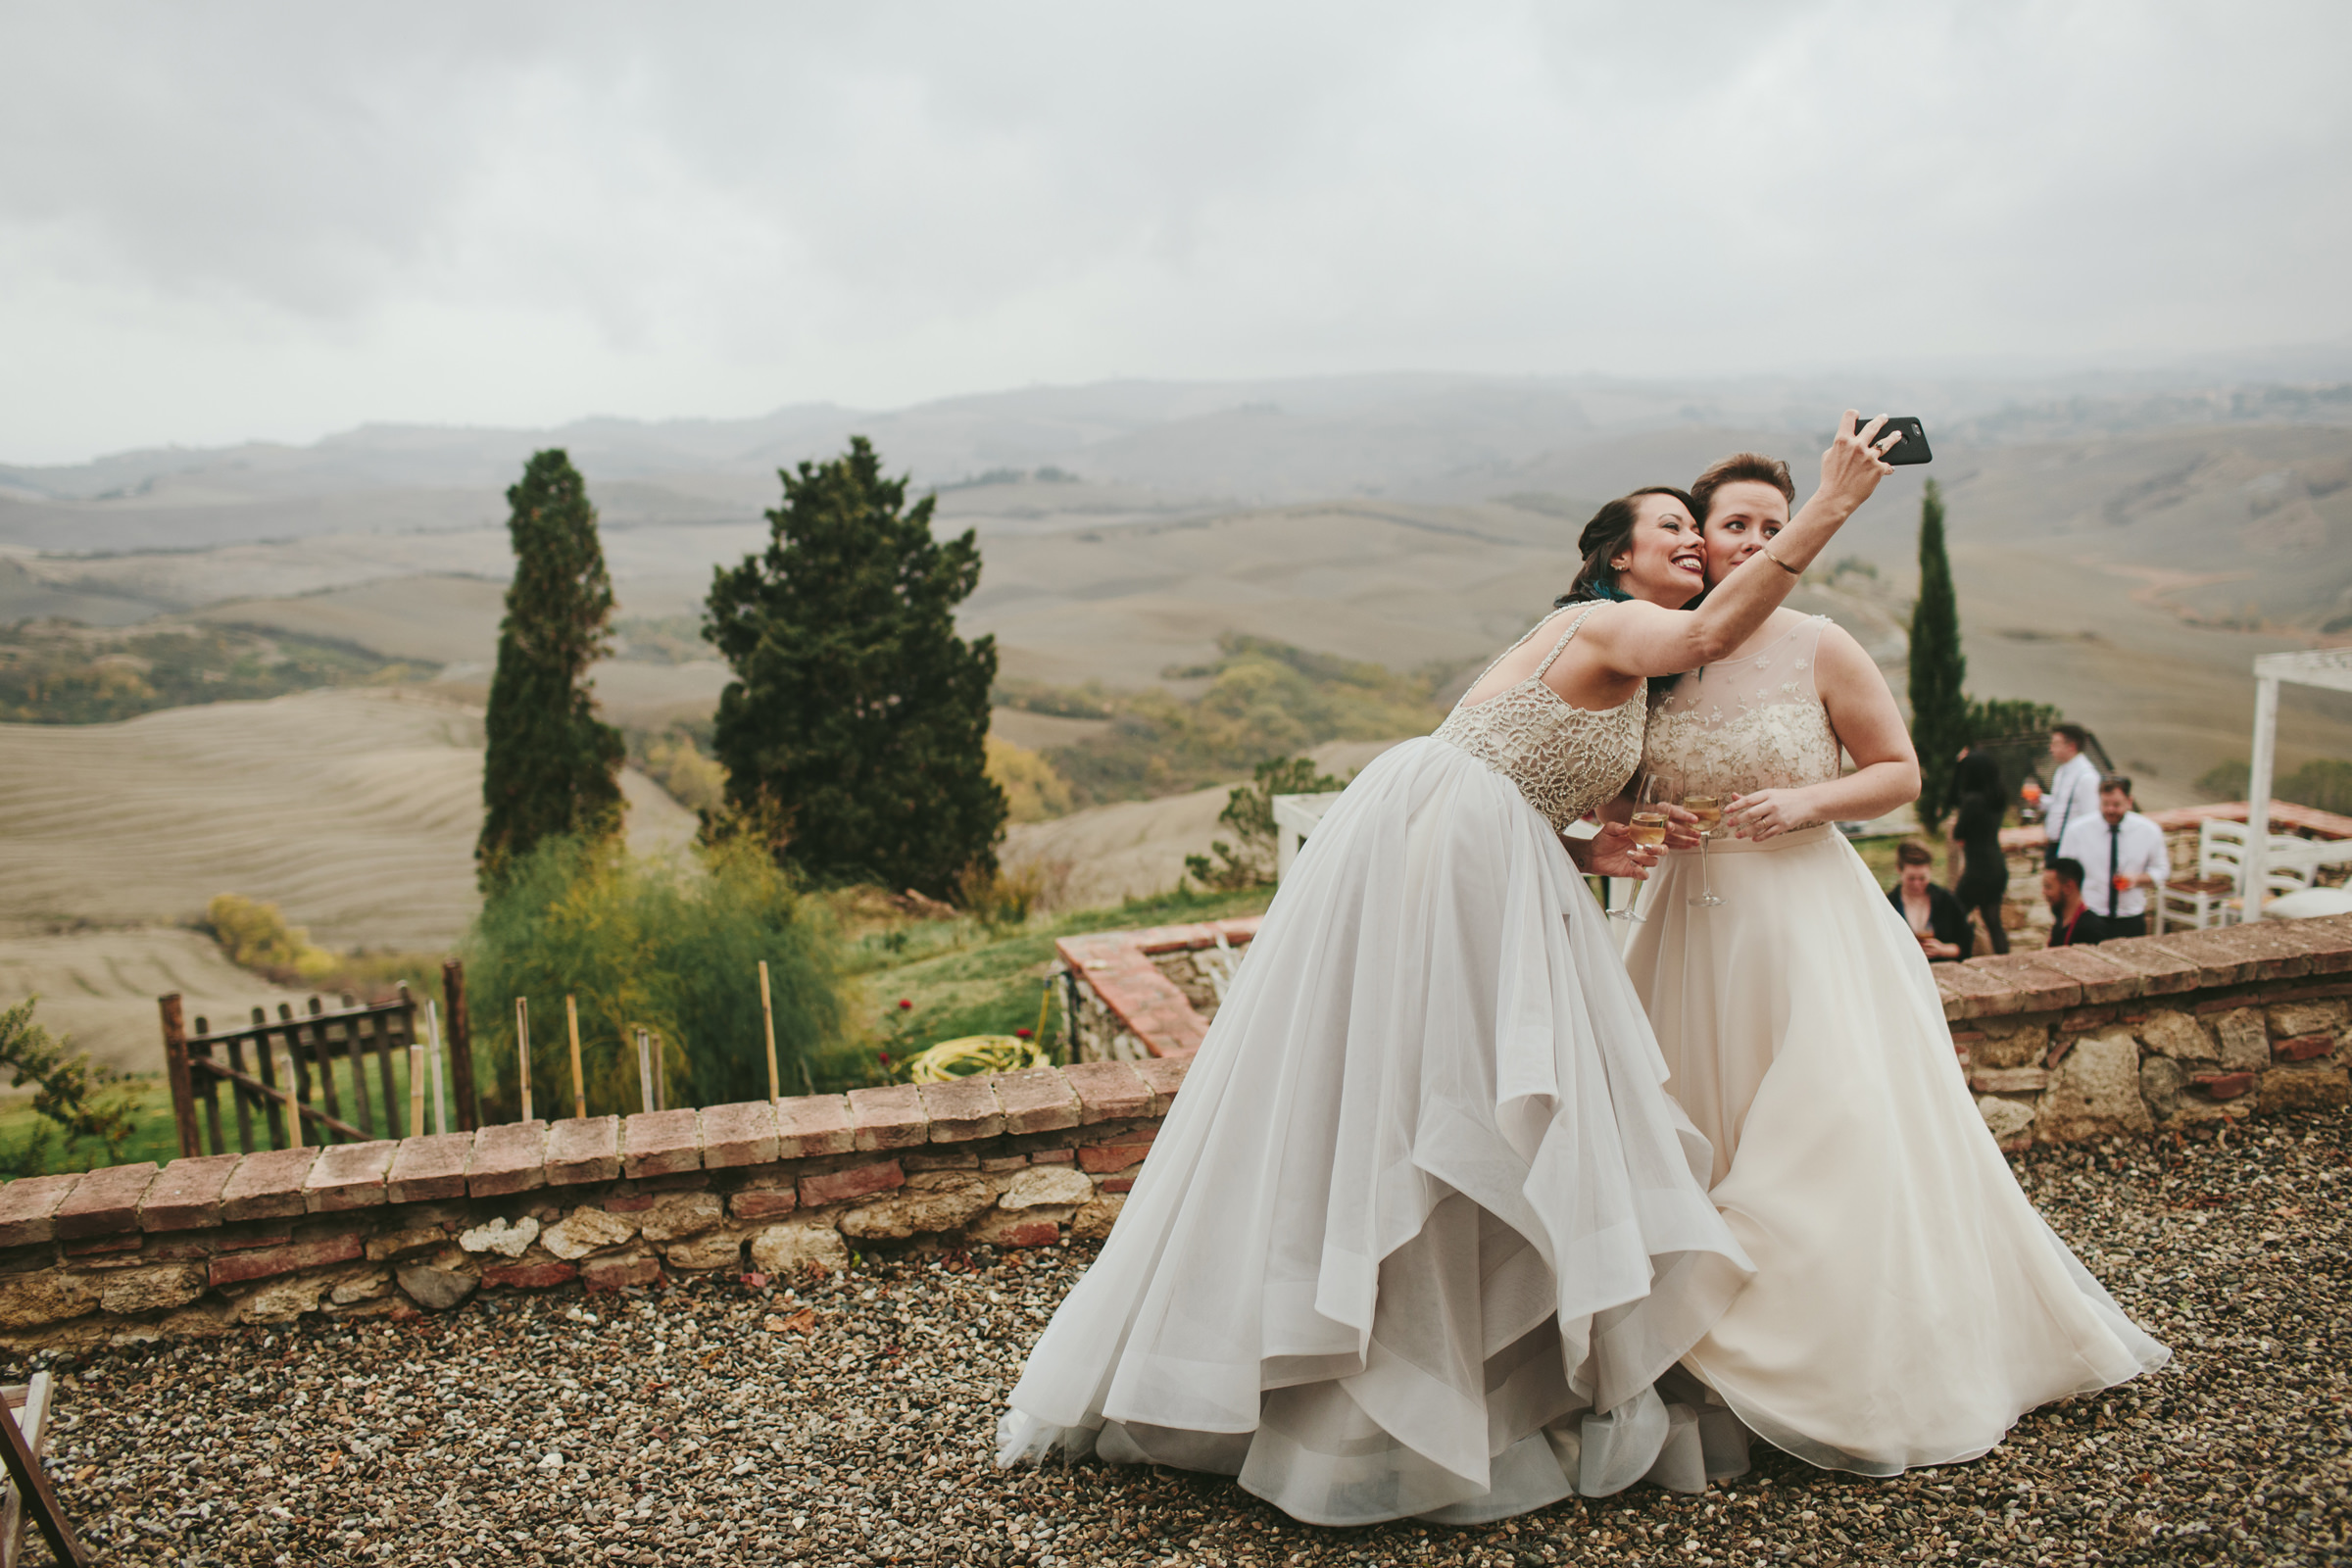 Brides taking selfie - photo by Melia Lucida